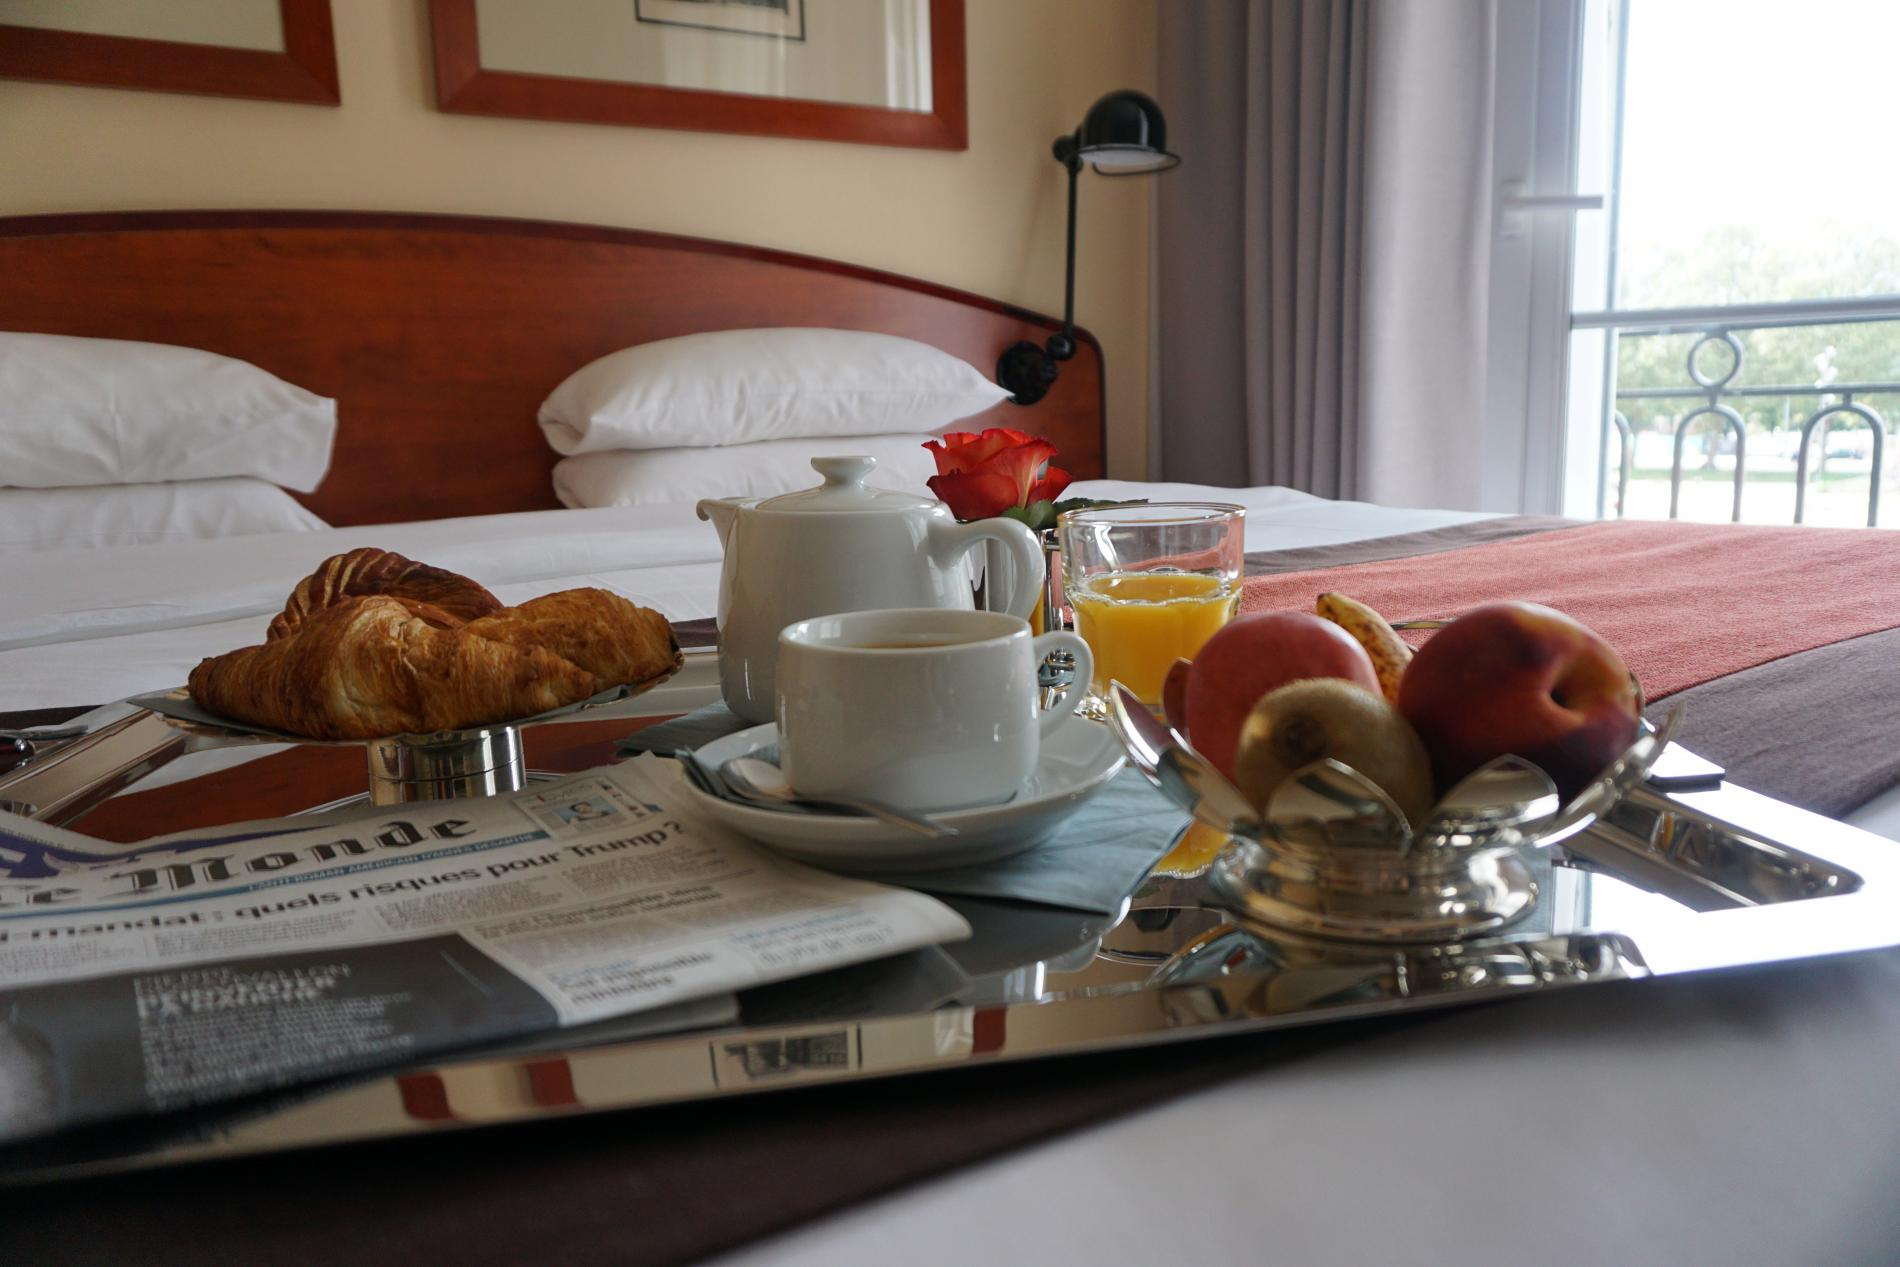 Breakfast on a tray : enjoy our room service !